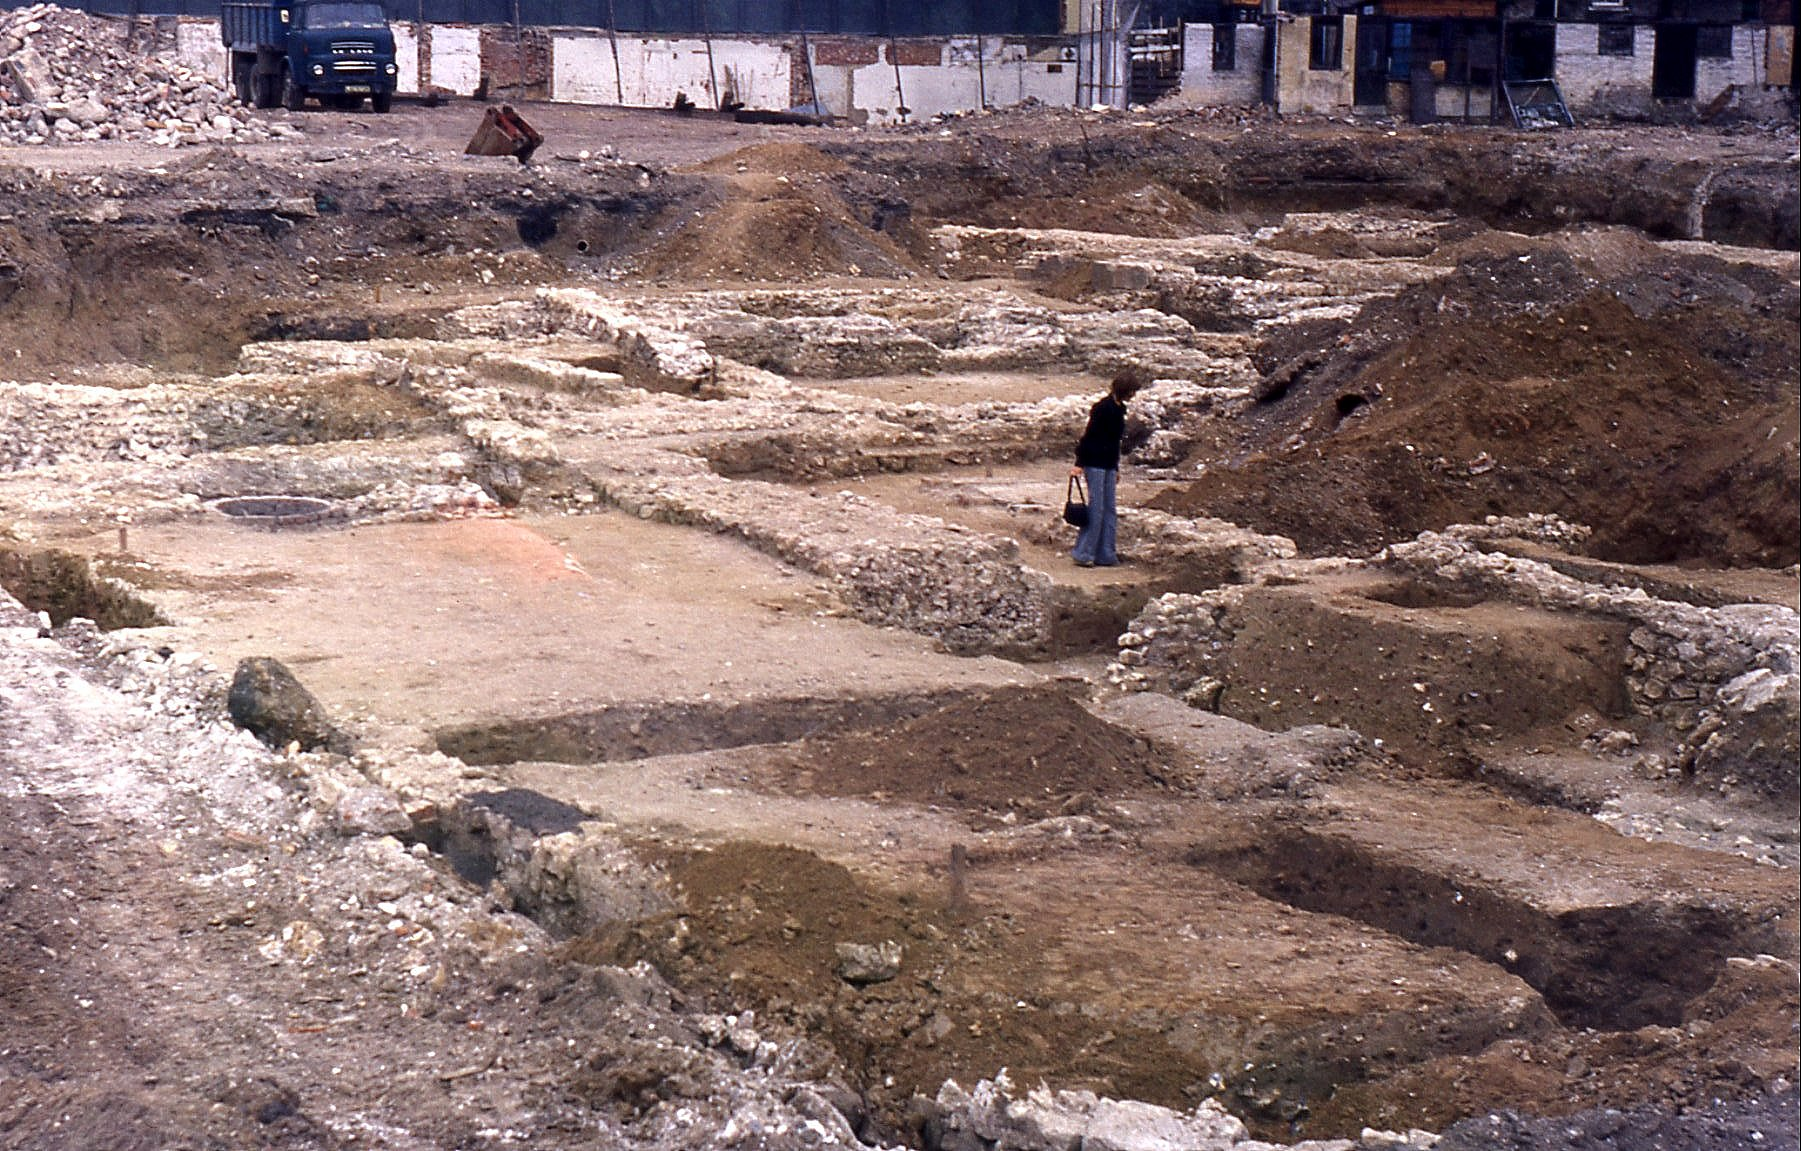 My wife examining the excavations